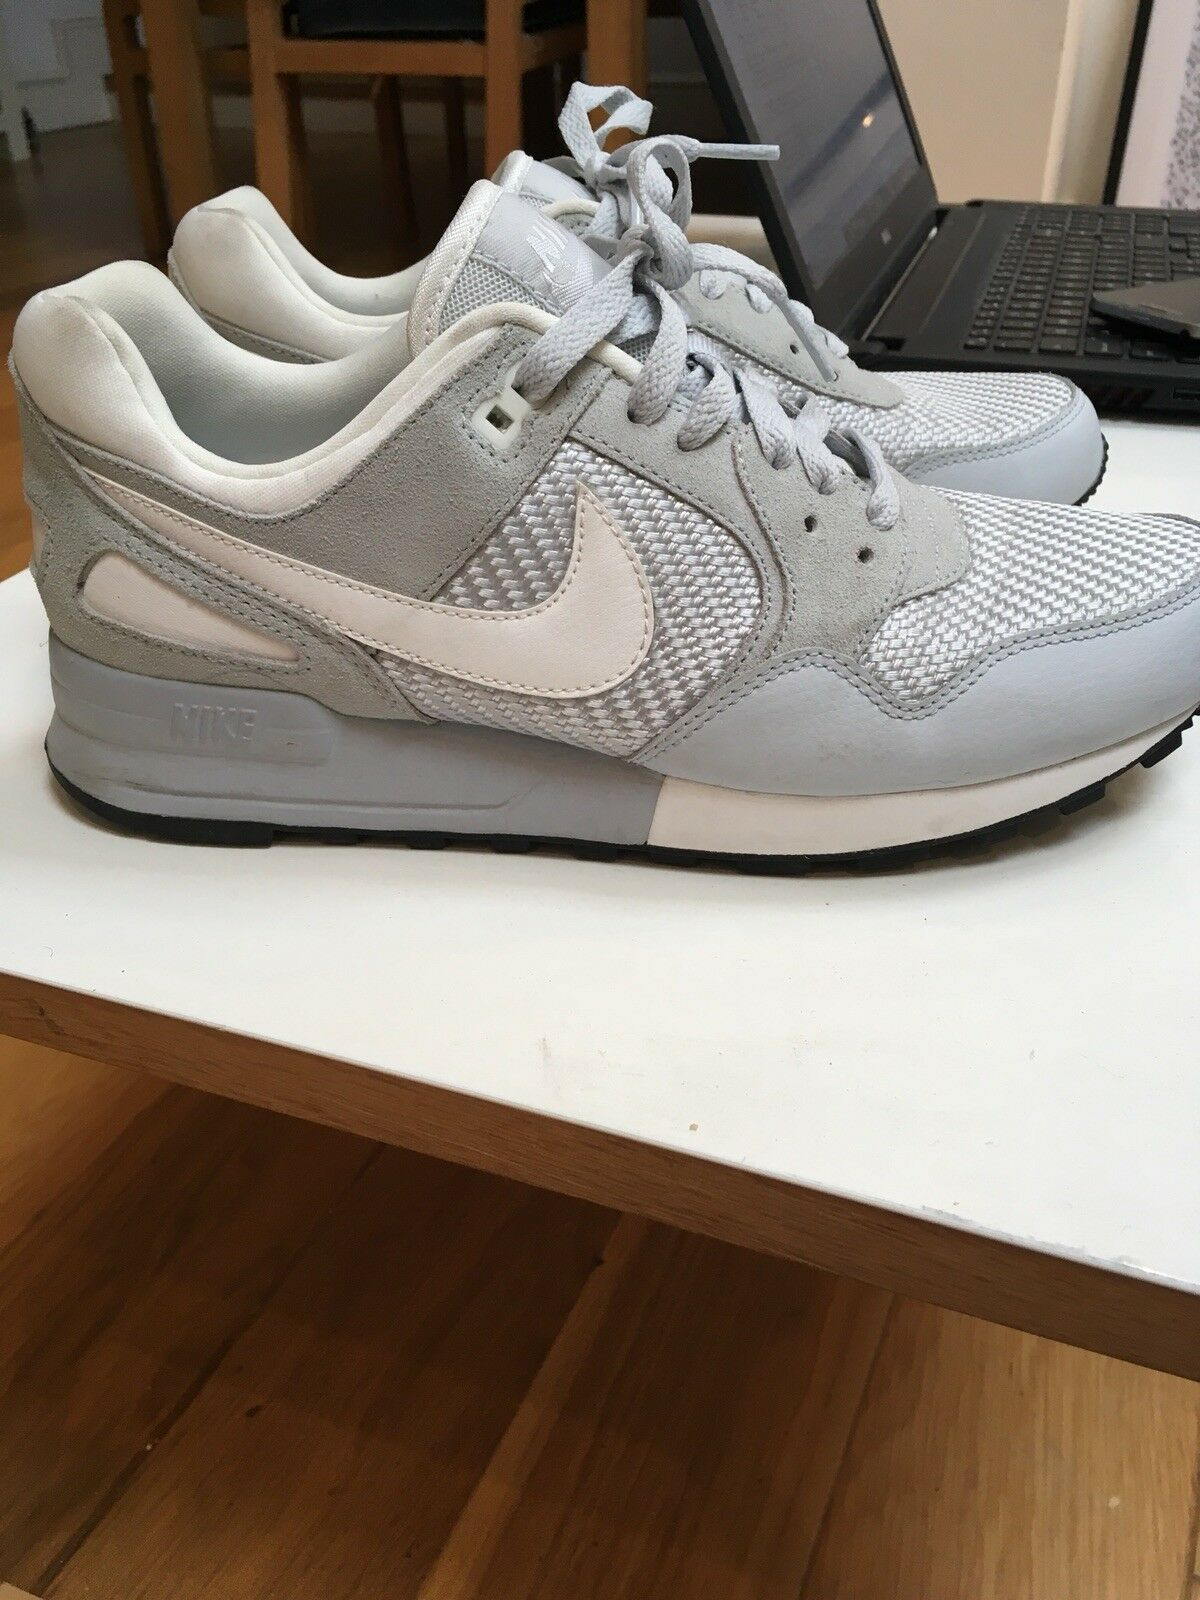 Nike Air Max Trainers Worn Once